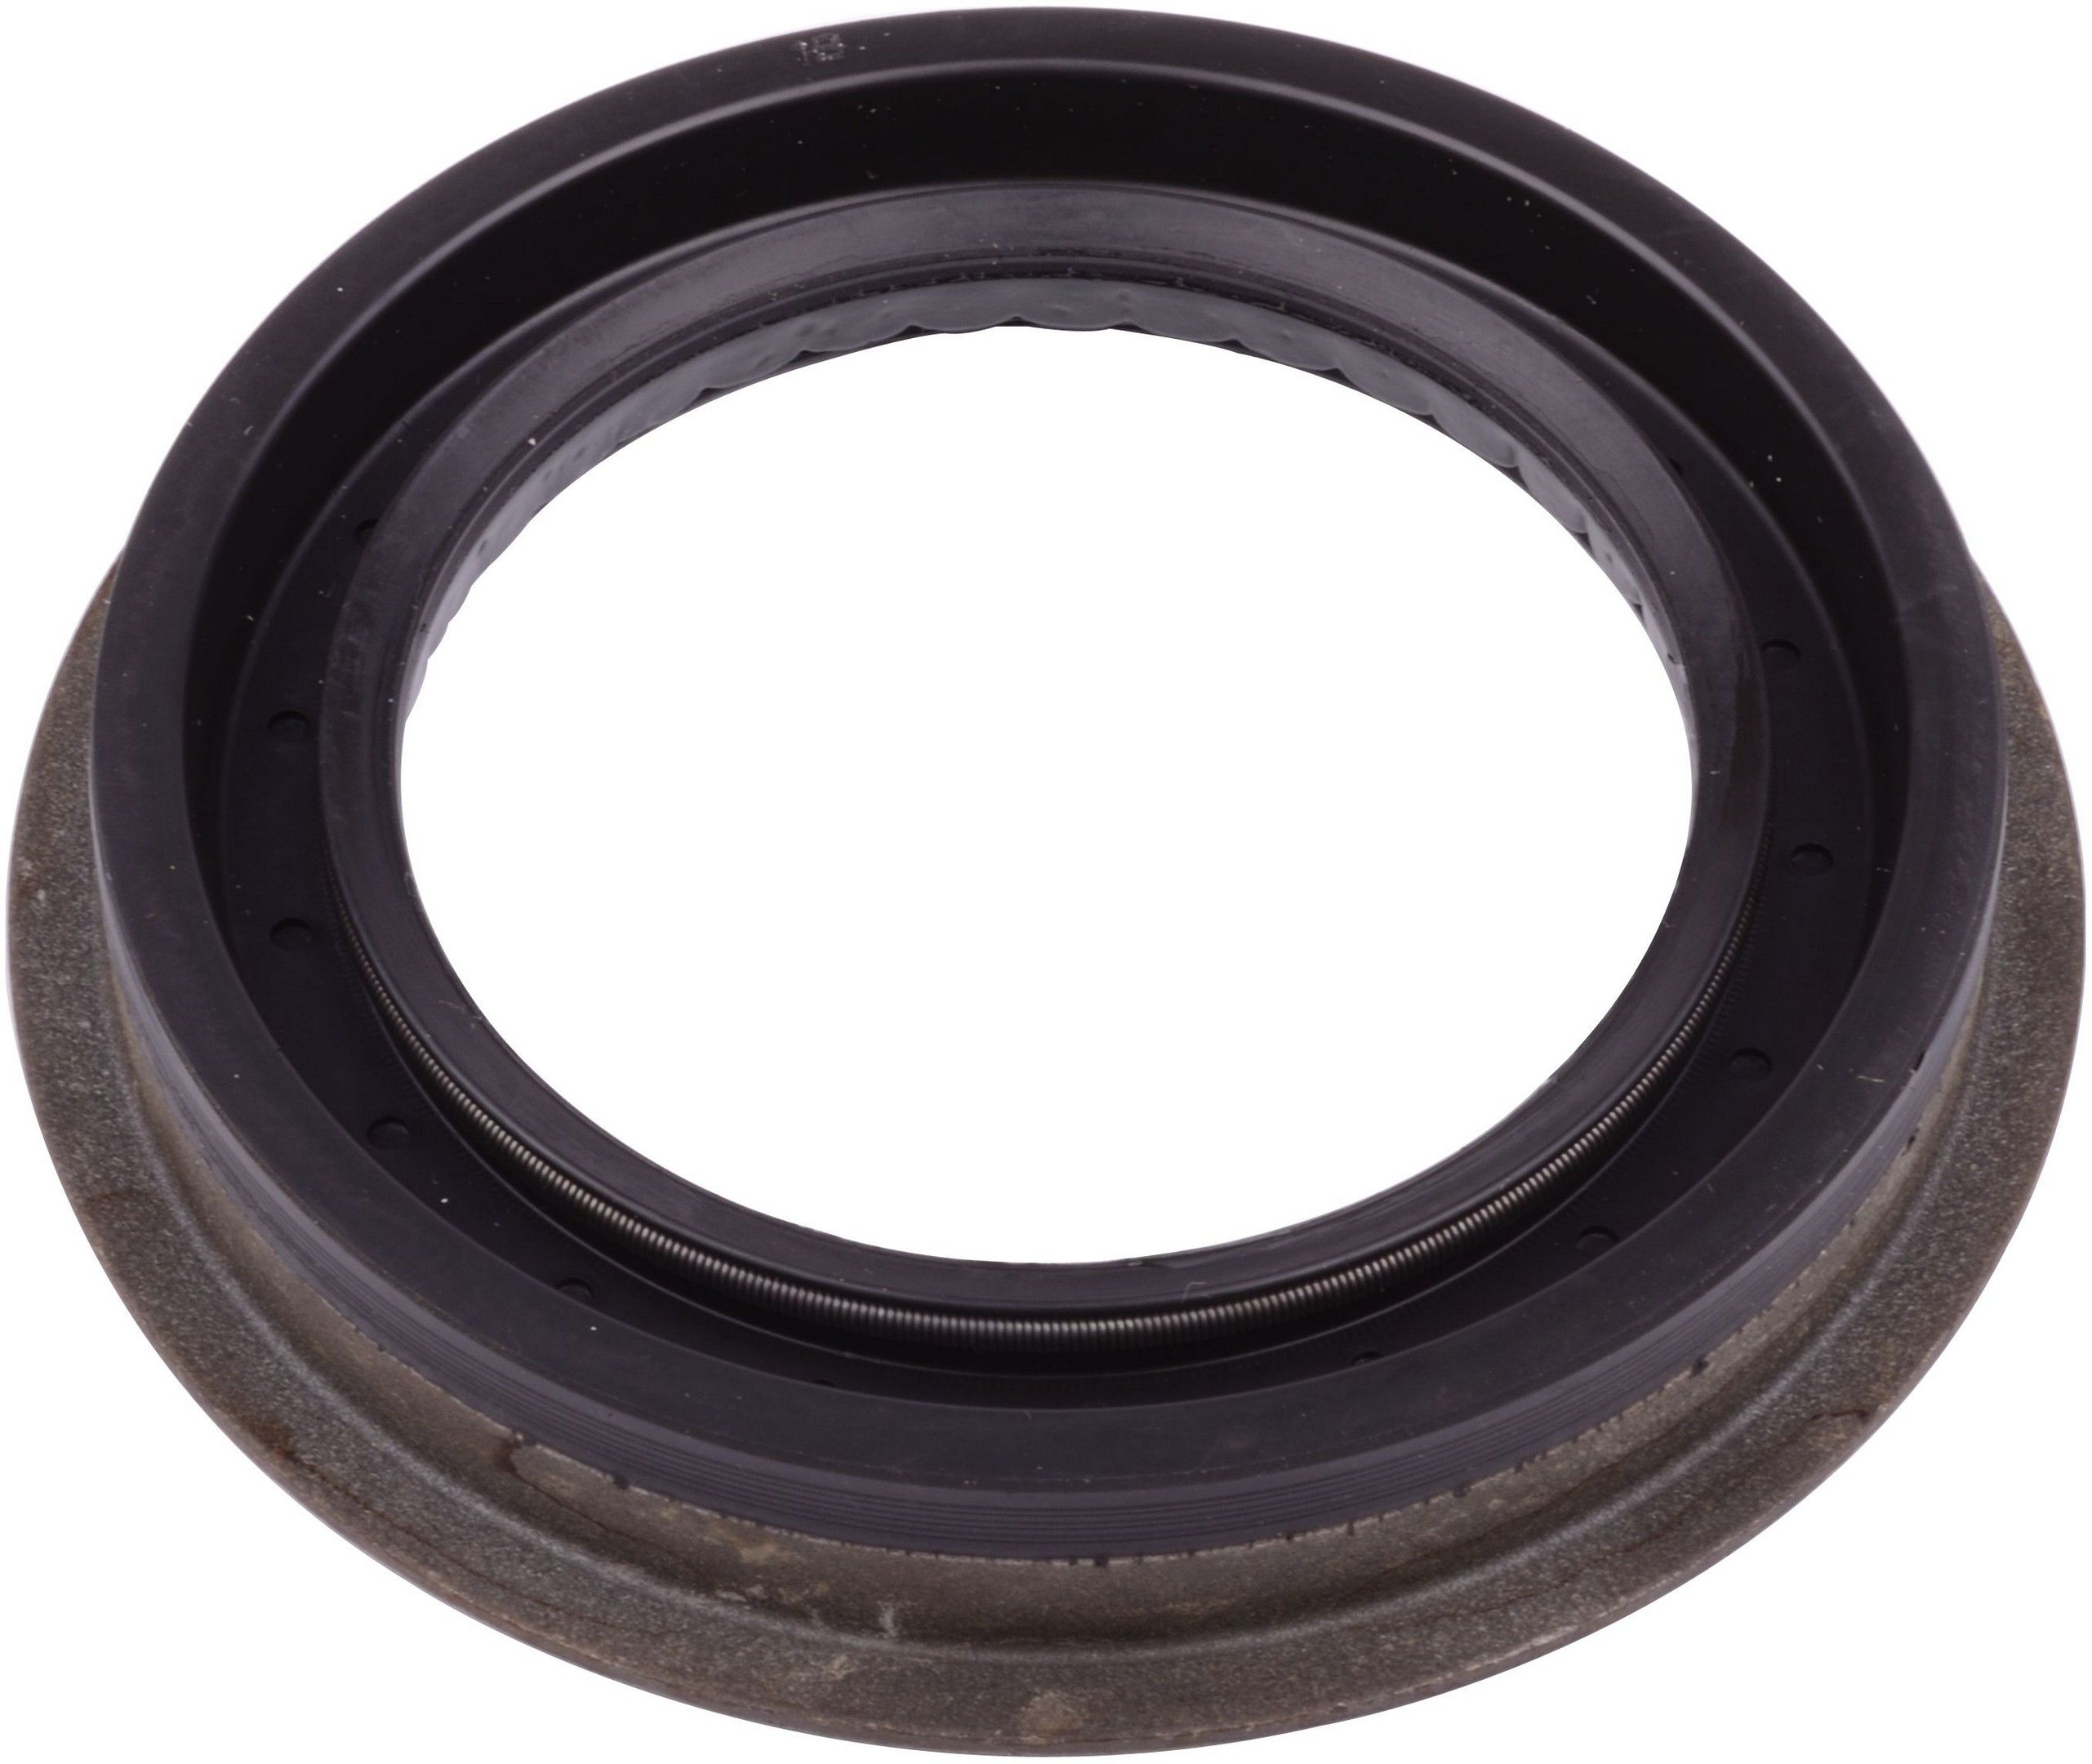 Dodge Ram 2500 Transfer Case Output Shaft Seal Replacement